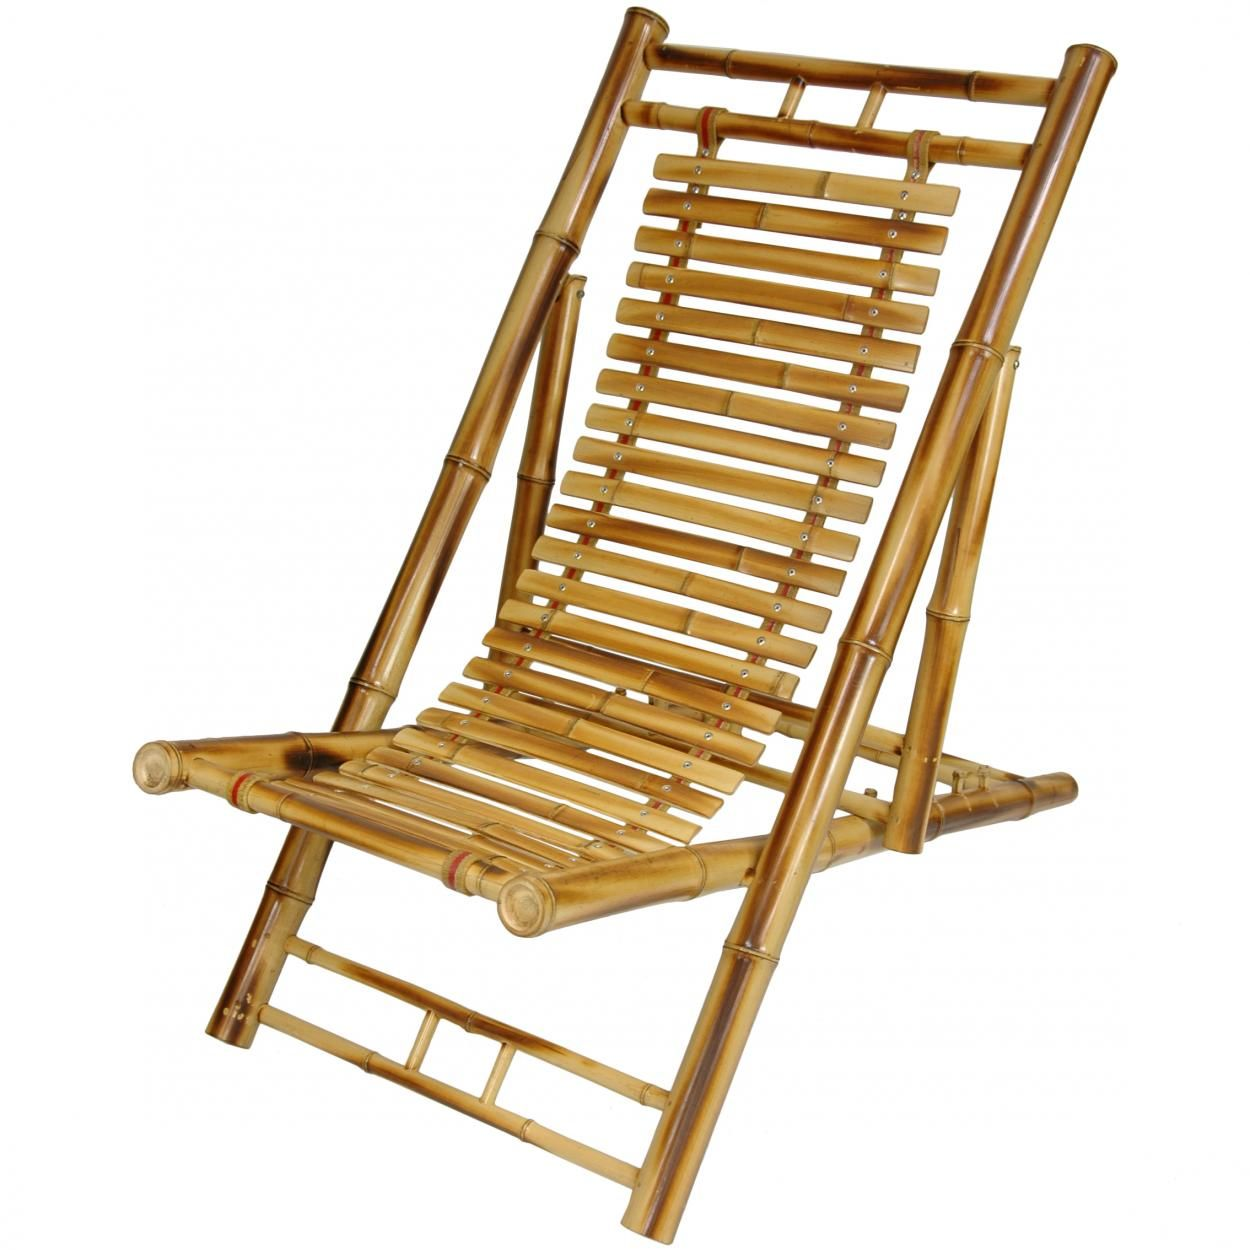 Buy Japanese Bamboo Folding Chair Online (WD20068B